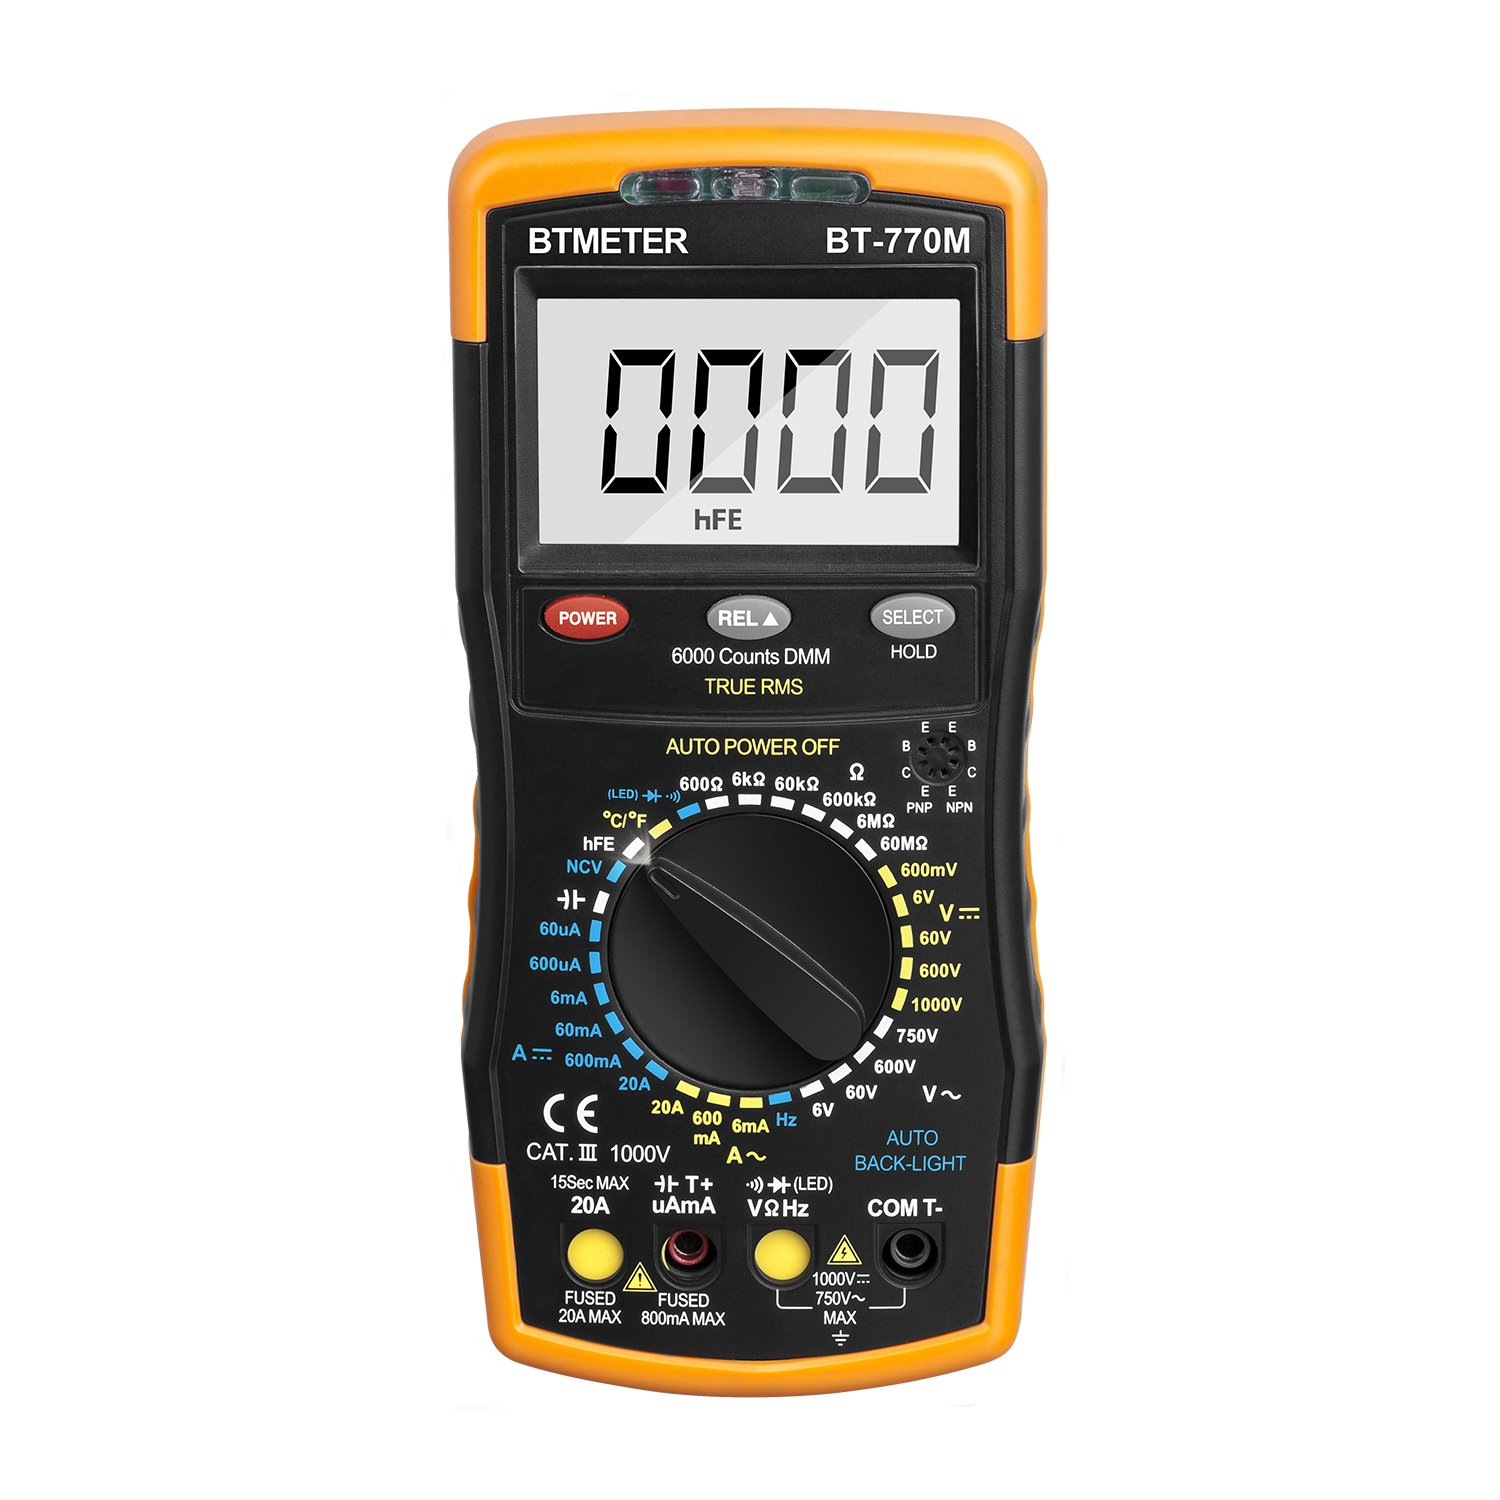 Multimeter BTMETER BT-770M Manual Range Digital Avometer Universal Meter 6000 Counts With Self-Locking Protection , NCV, Diode , AC & DC Voltage, AC & DC Current, Resistance, Capacitance by BTMETER